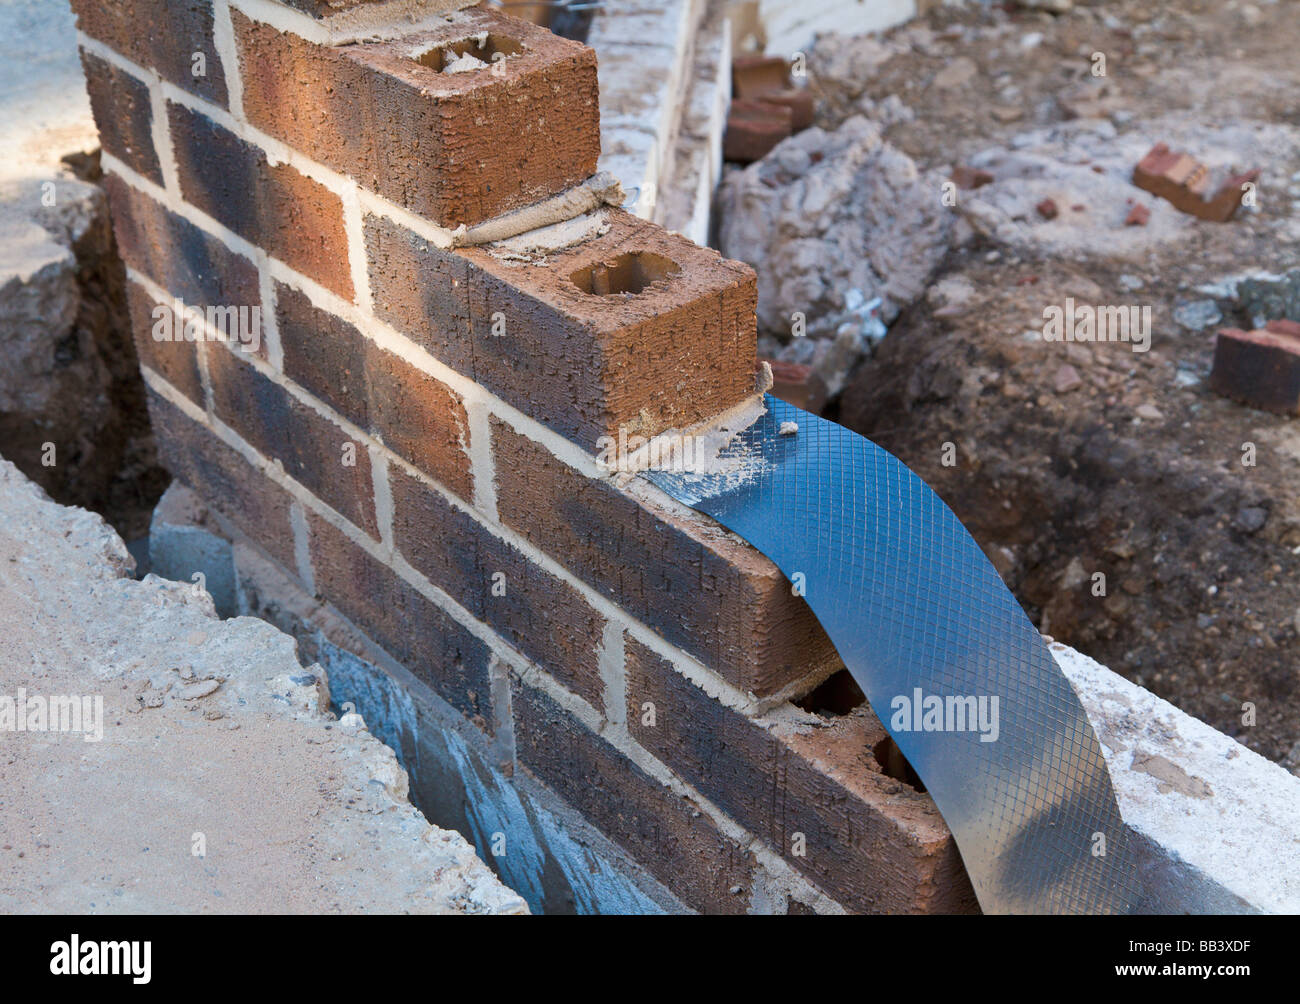 Damp Proof Membrane Being Built Into A Brick Wall House Extension Stock Photo Royalty Free